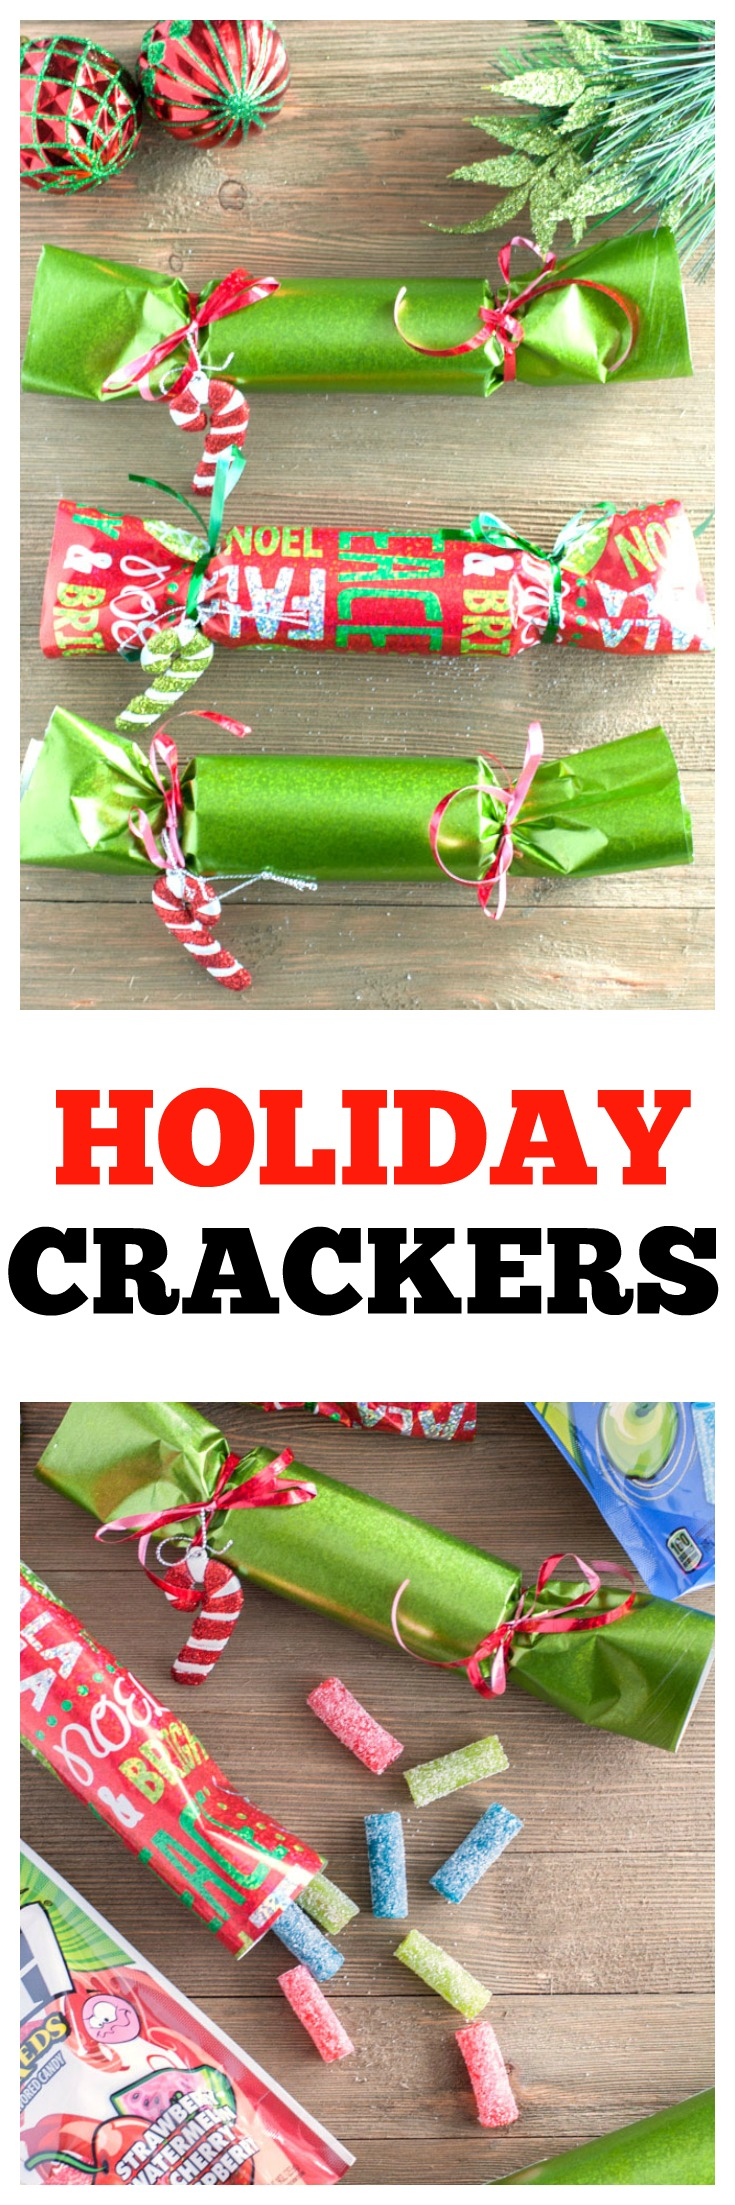 diy crackers